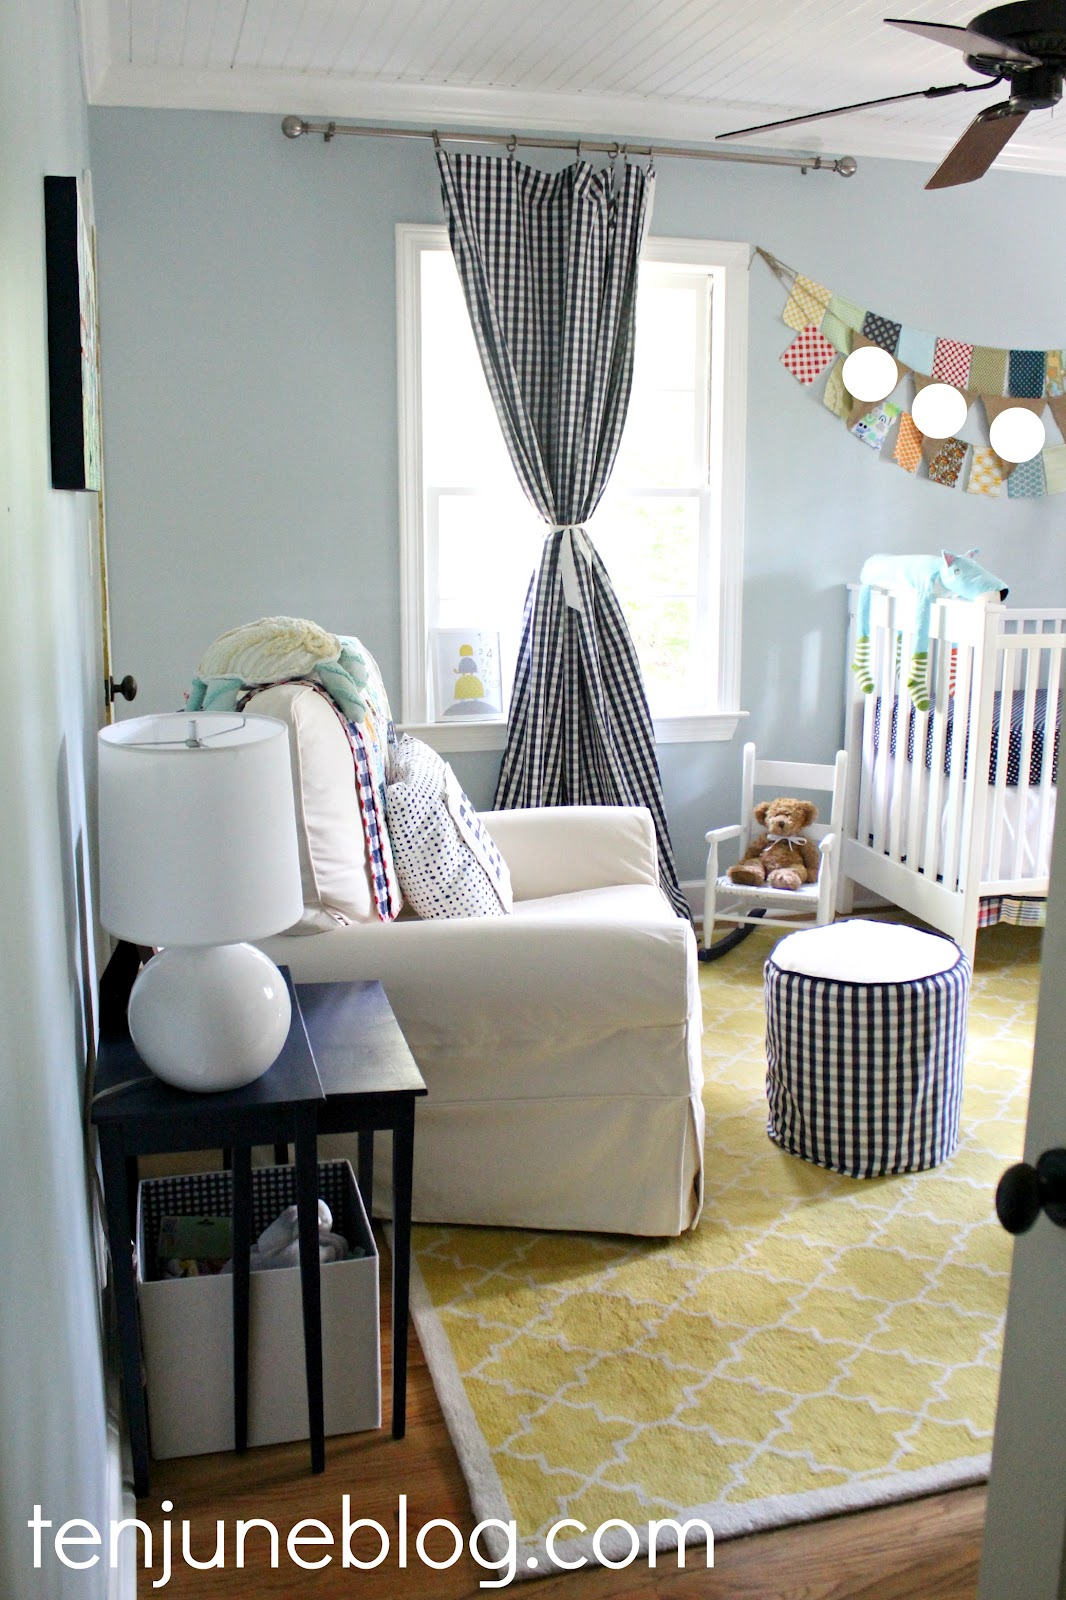 Ten June: Baby Boy Nursery Source List